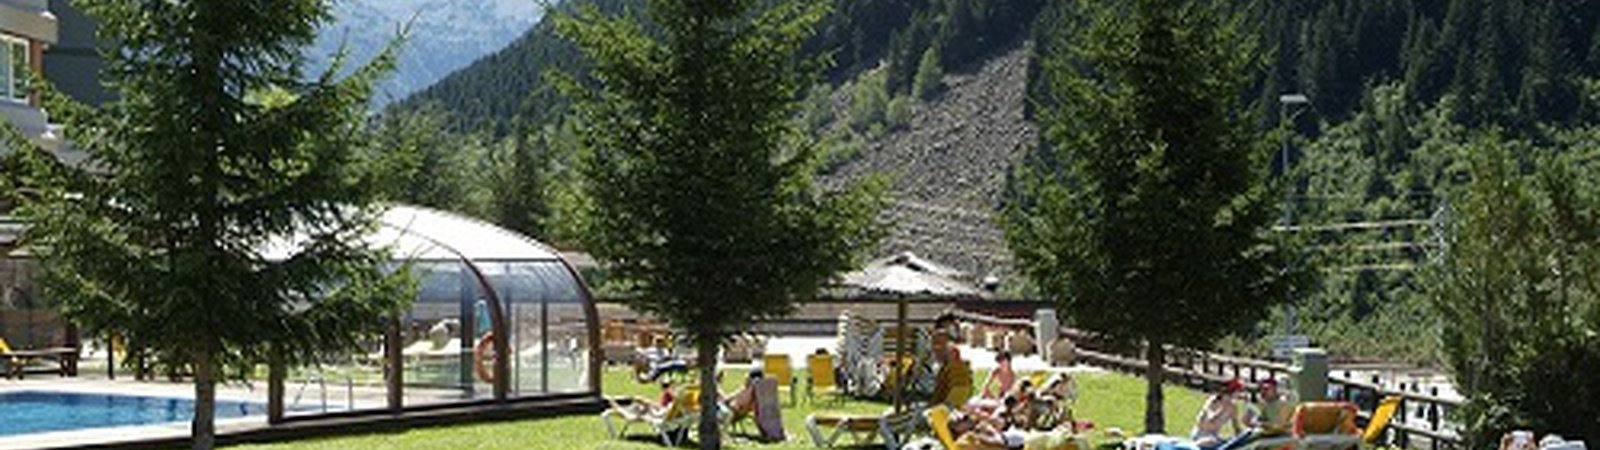 We will be open from July 1st to August 31st! The Hotel of Baqueira Beret